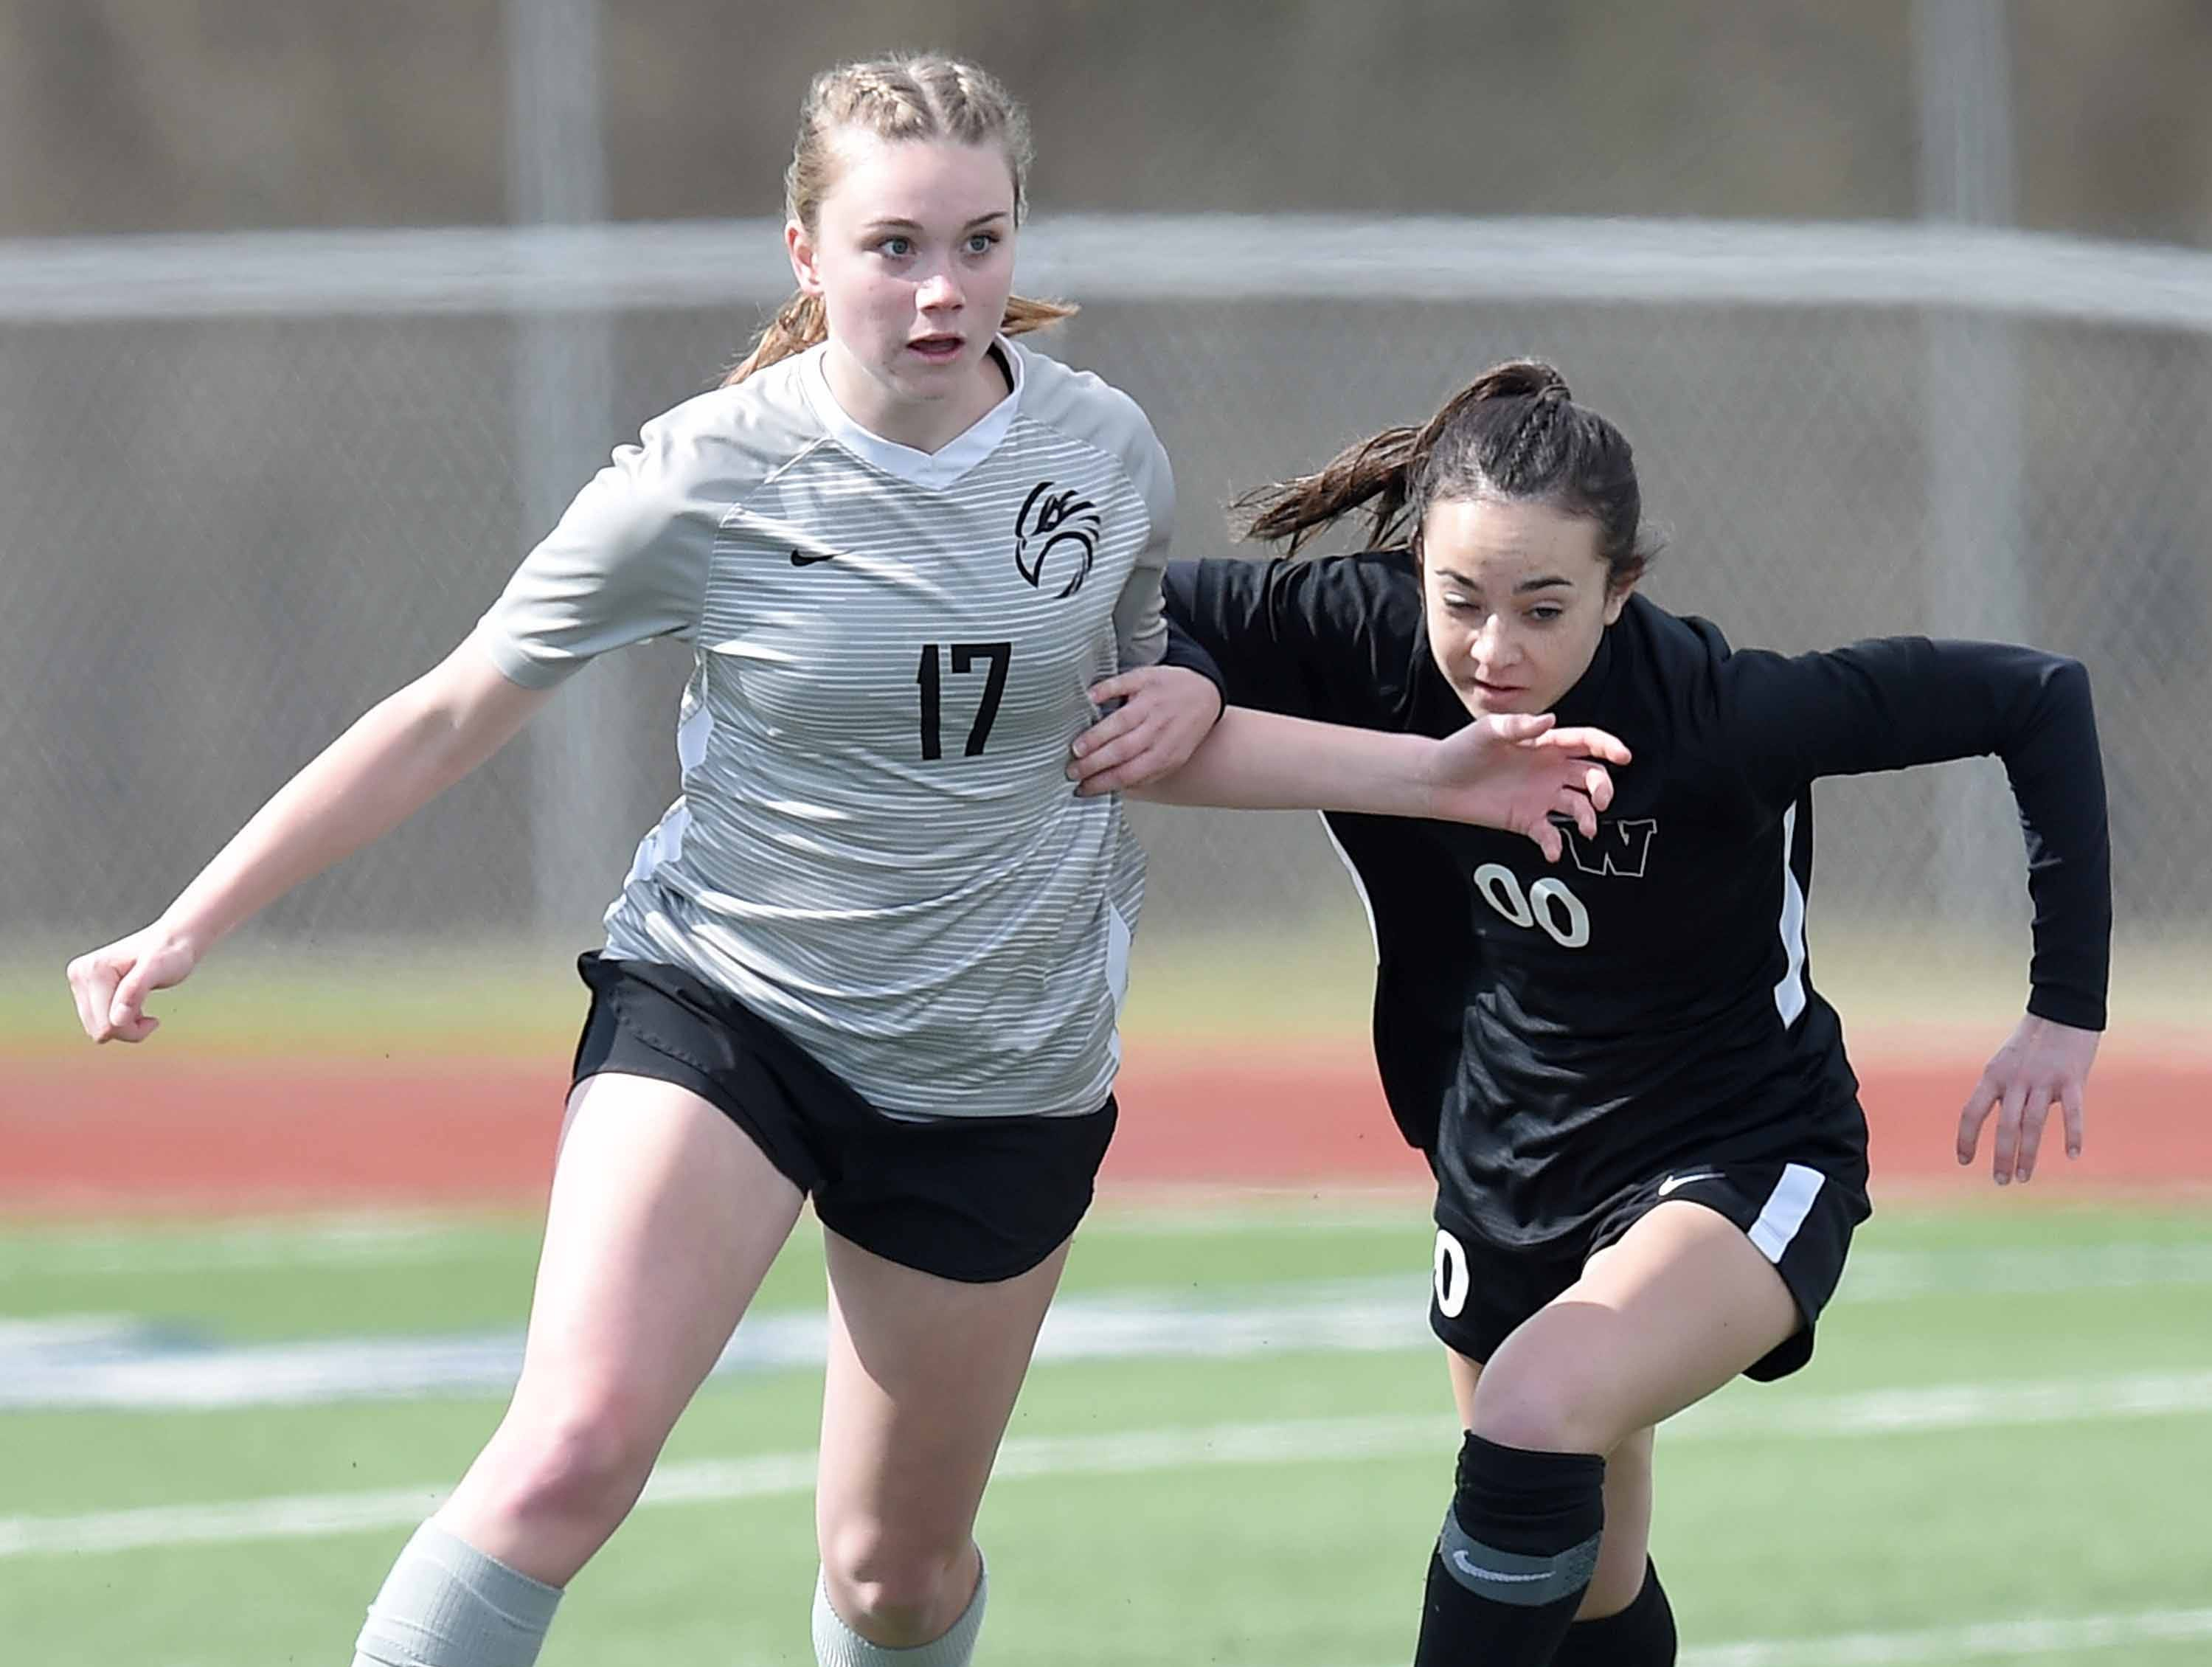 Florence's Taylor Ford (17) and West Lauderdale's Mikaela Morrison (00) compete for a ball at midfield in the Class 4A state championship in the MHSAA BlueCross Blue Shield of Mississippi Soccer Classic on Saturday, February 9, 2019, at Ridgeland High School in Ridgeland, Miss.